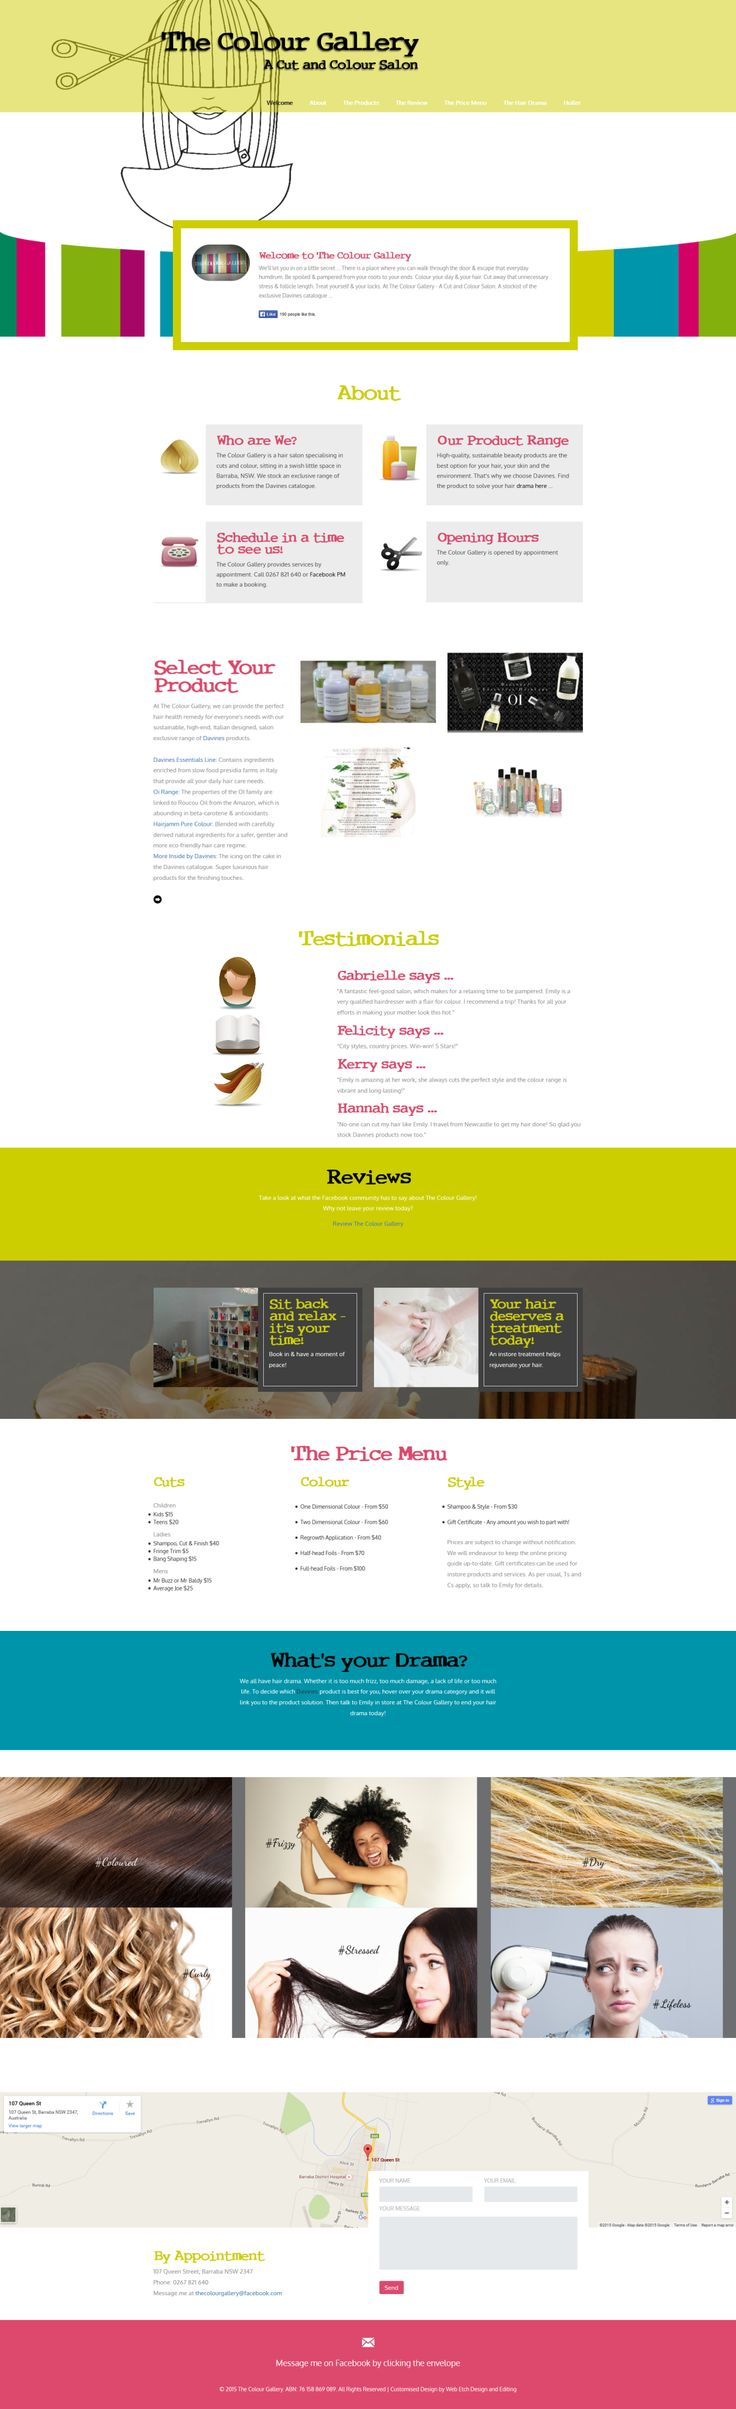 Web Etch Design and Editing - Responsive website for The Colour Gallery (HTML5 & CSS3, JS, Bootstrap)